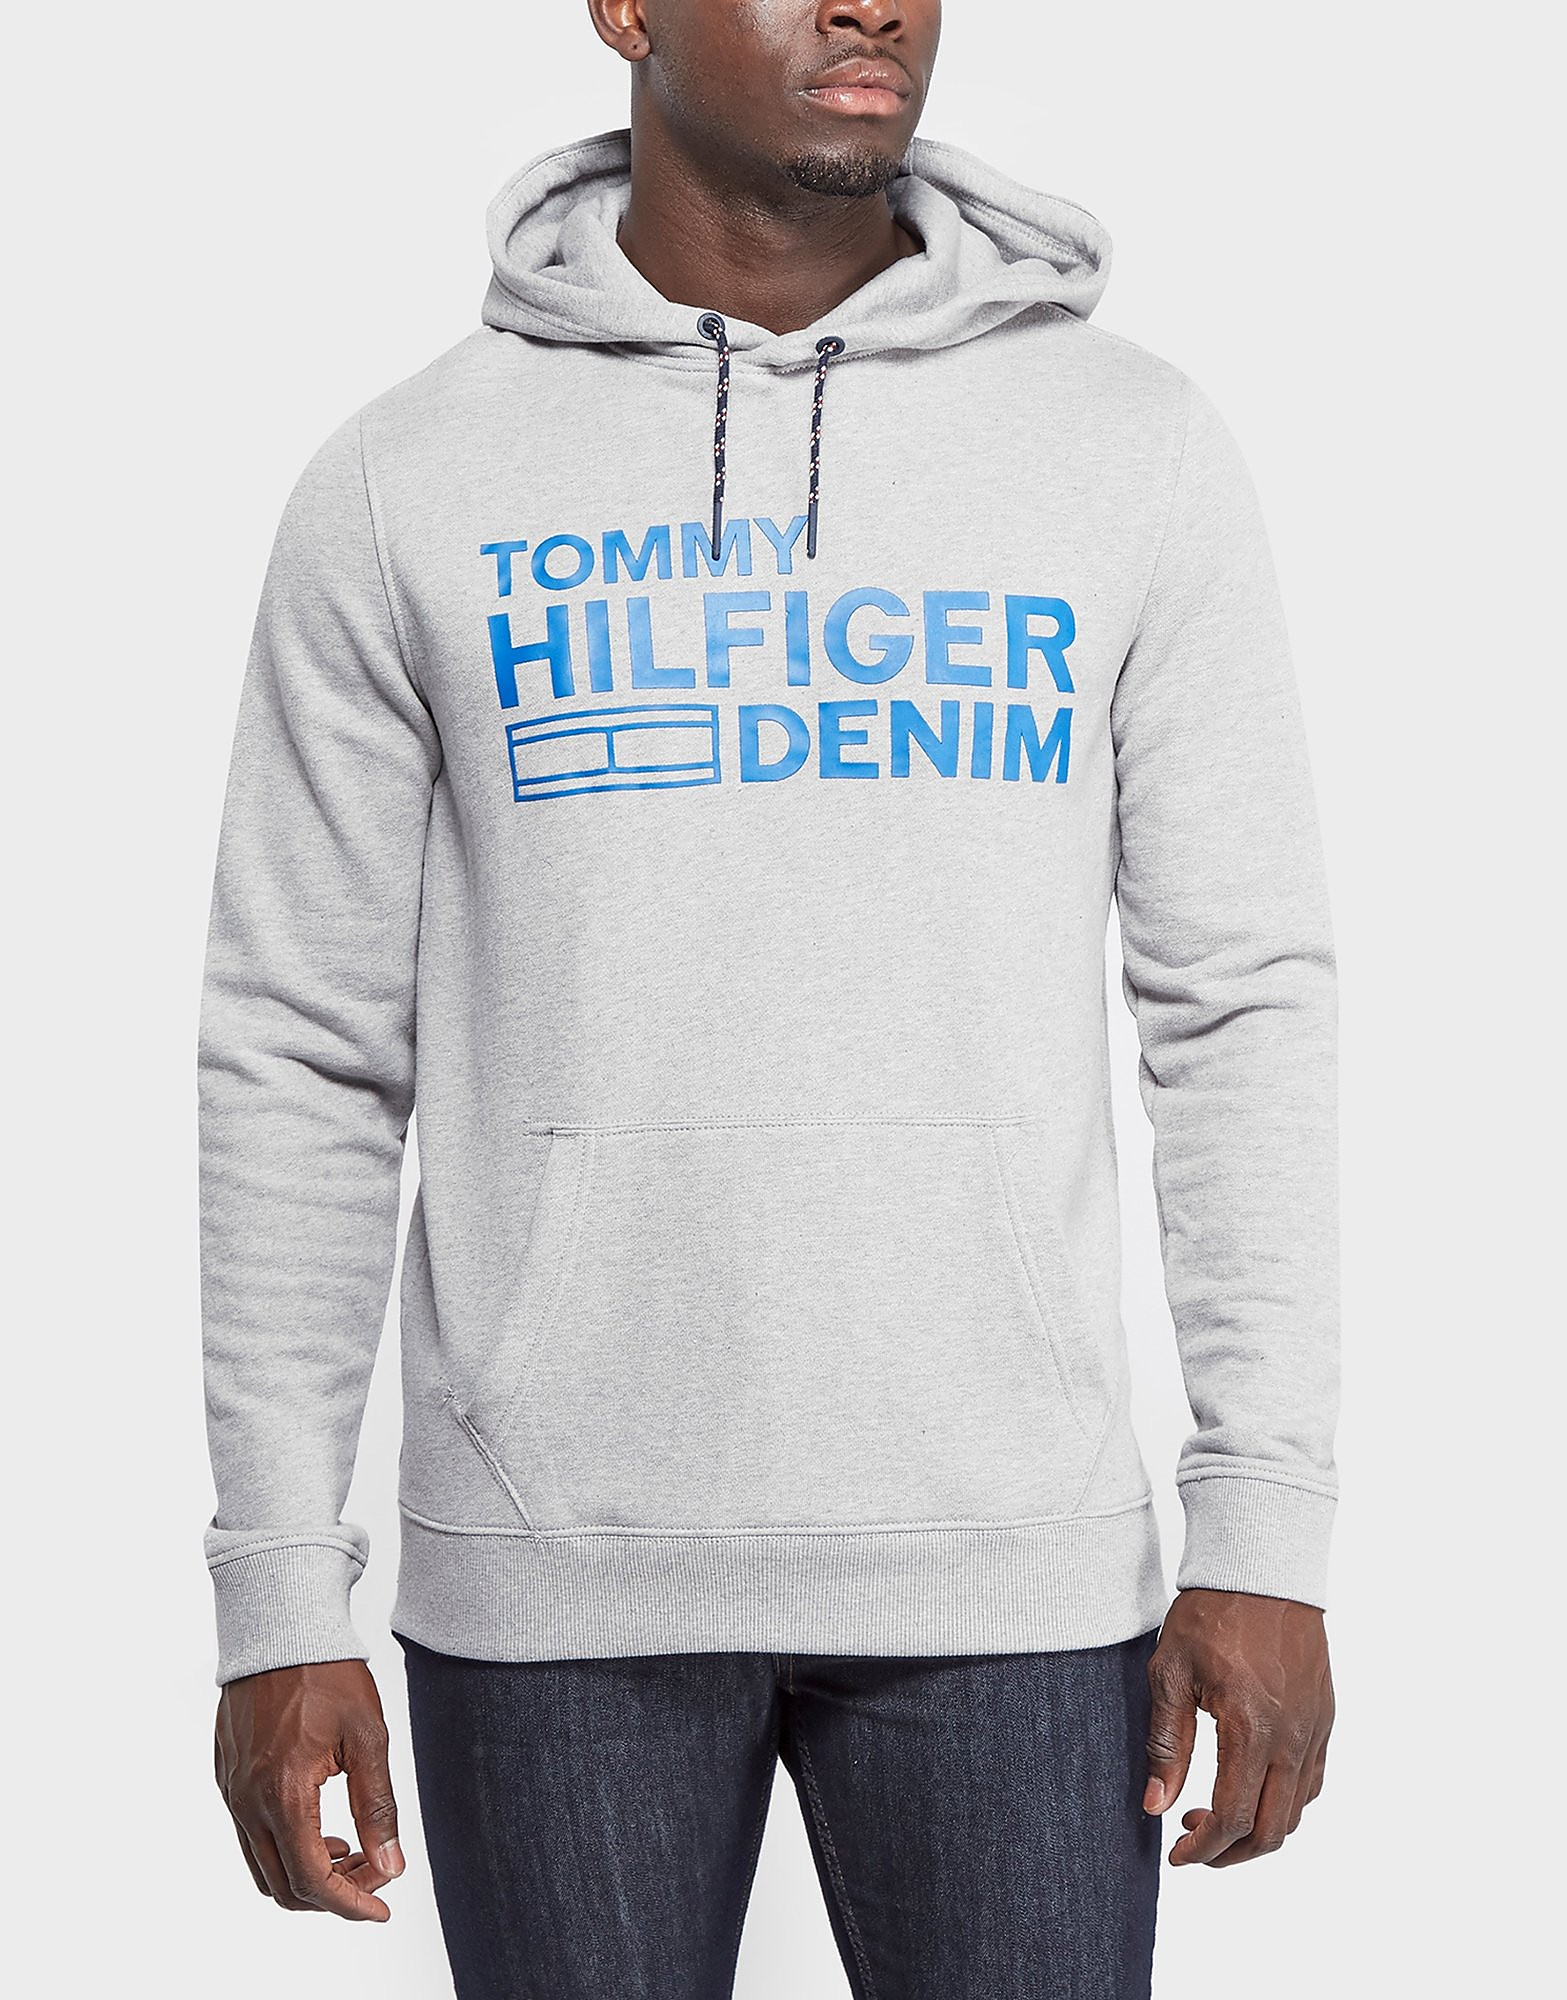 Tommy Hilfiger Branded Hoody